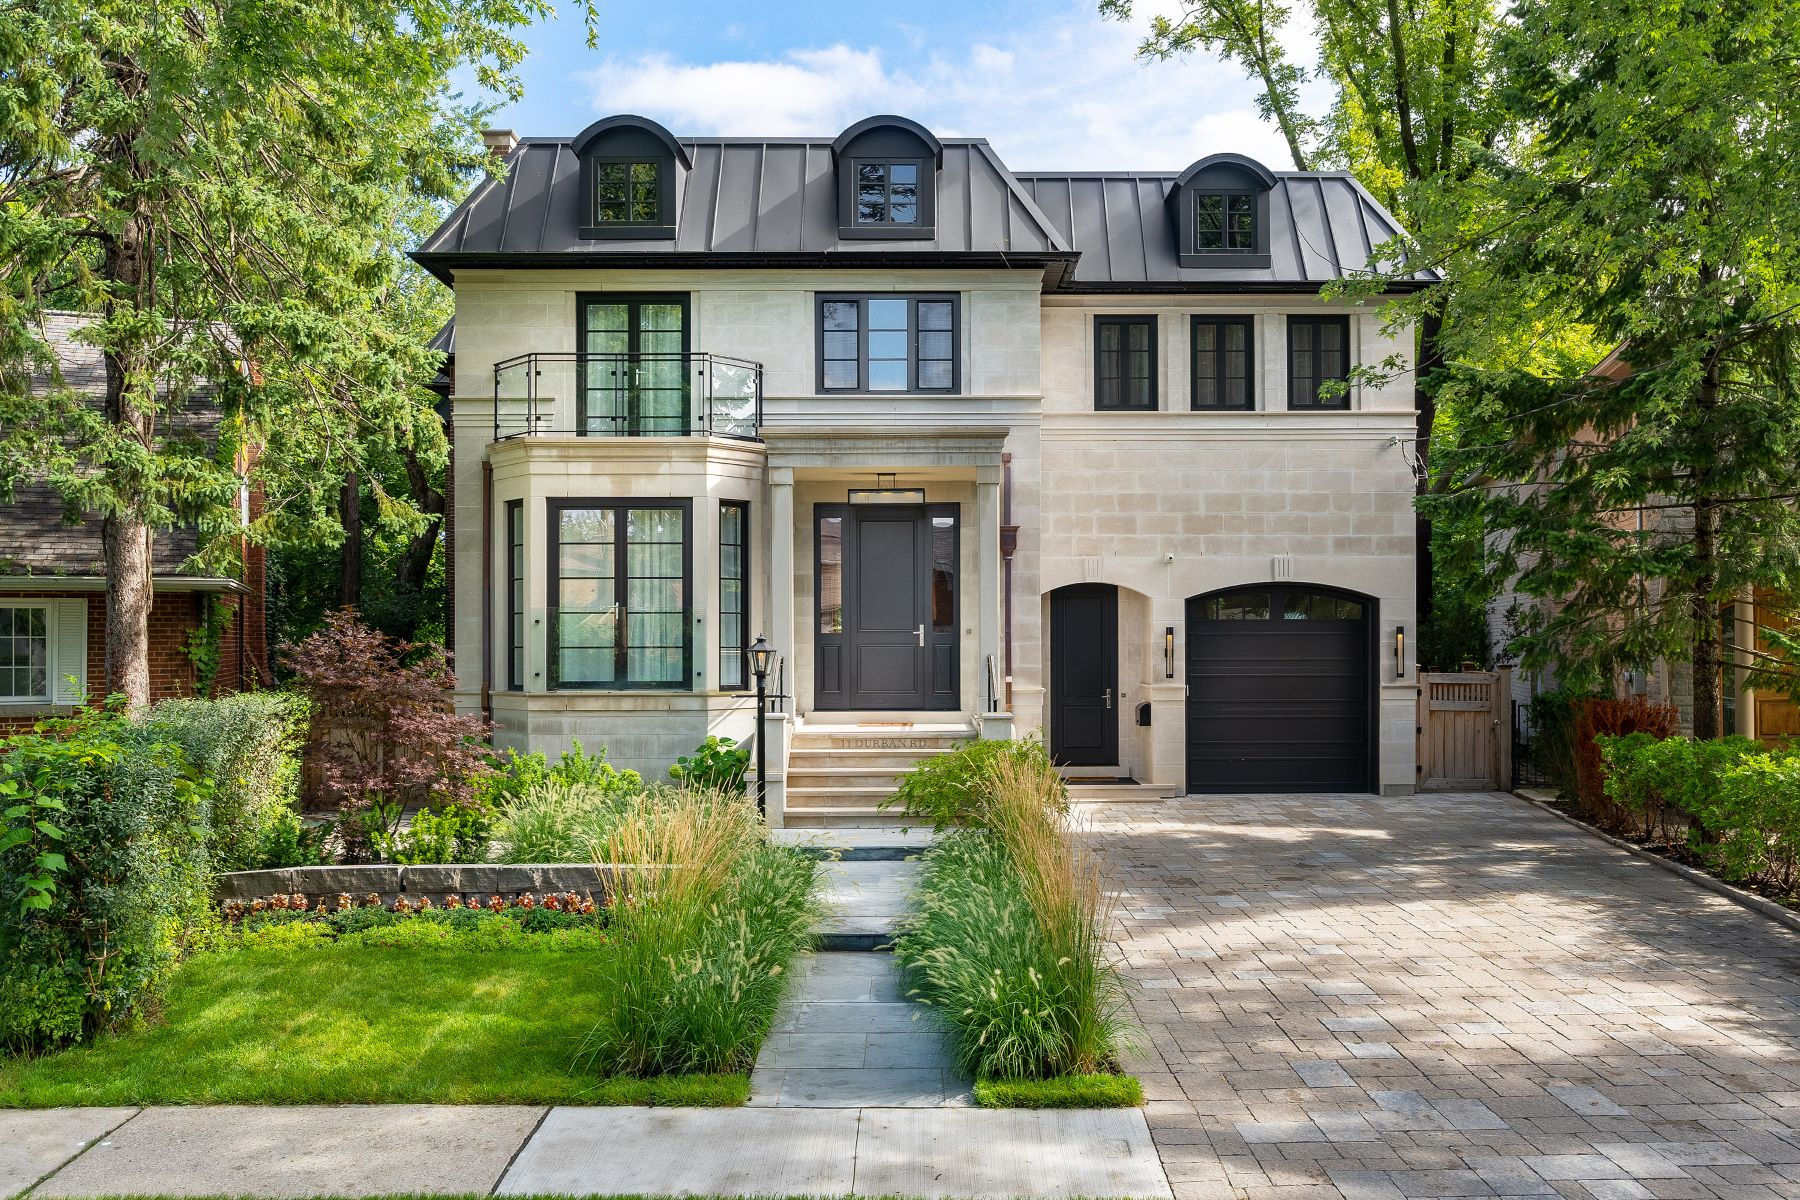 Single Family Home for Sale at Superb Design 11 Durban Rd Toronto, Ontario M8Z 4B2 Canada